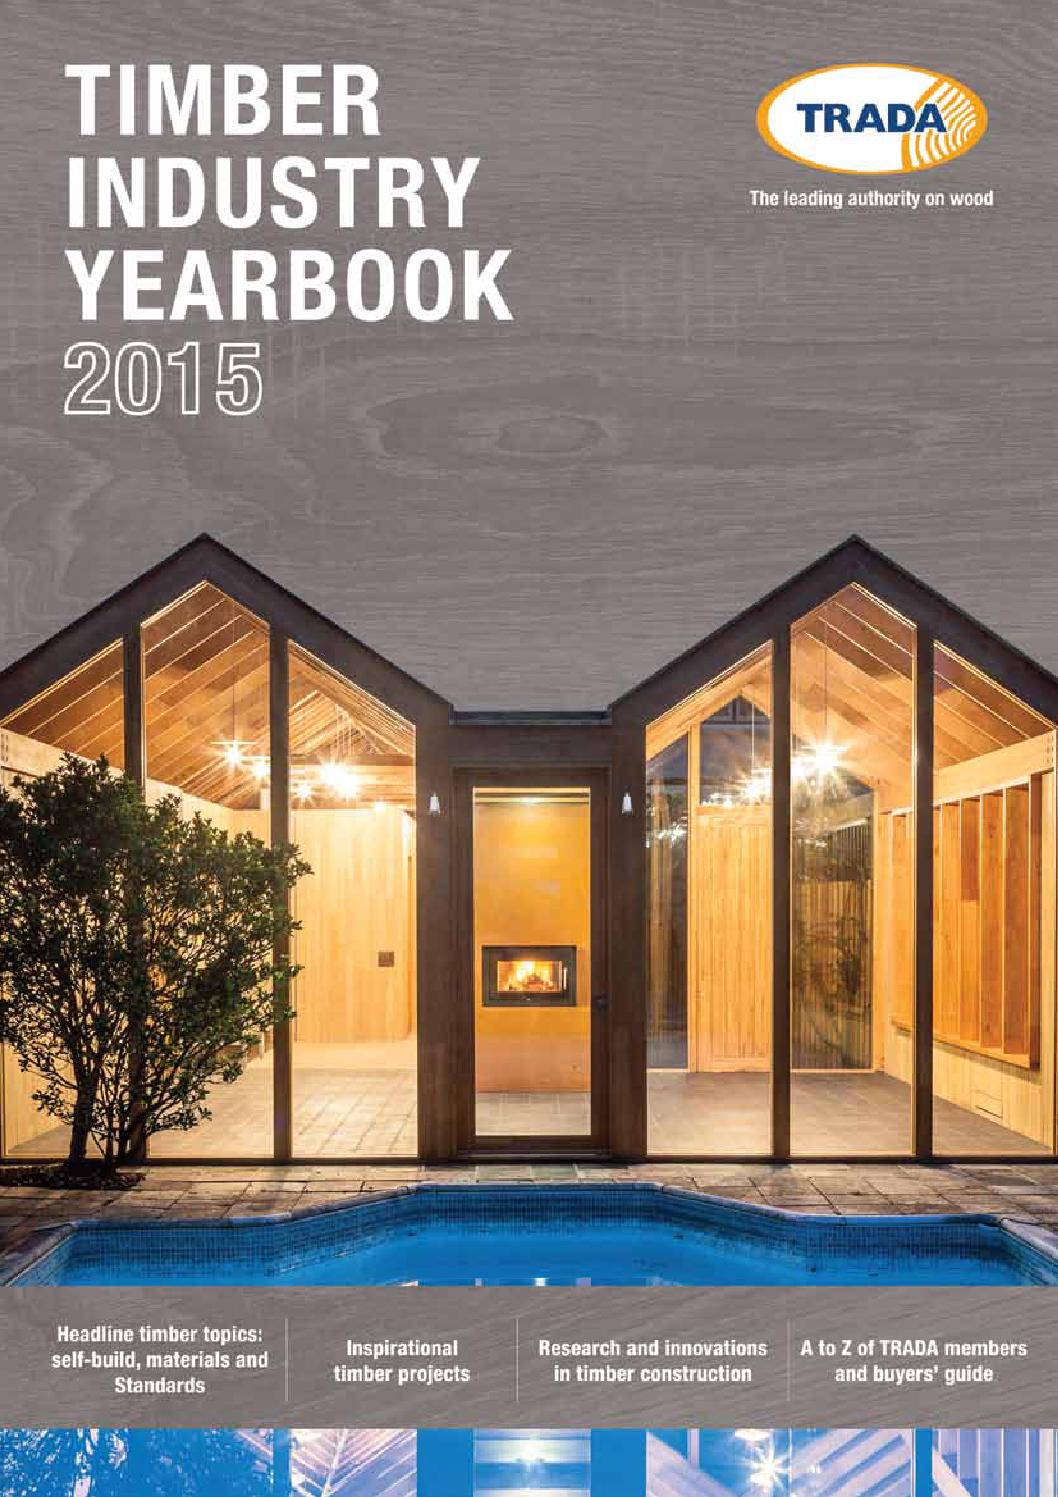 Timber Industry Yearbook 2015 by Exova BM TRADA - issuu